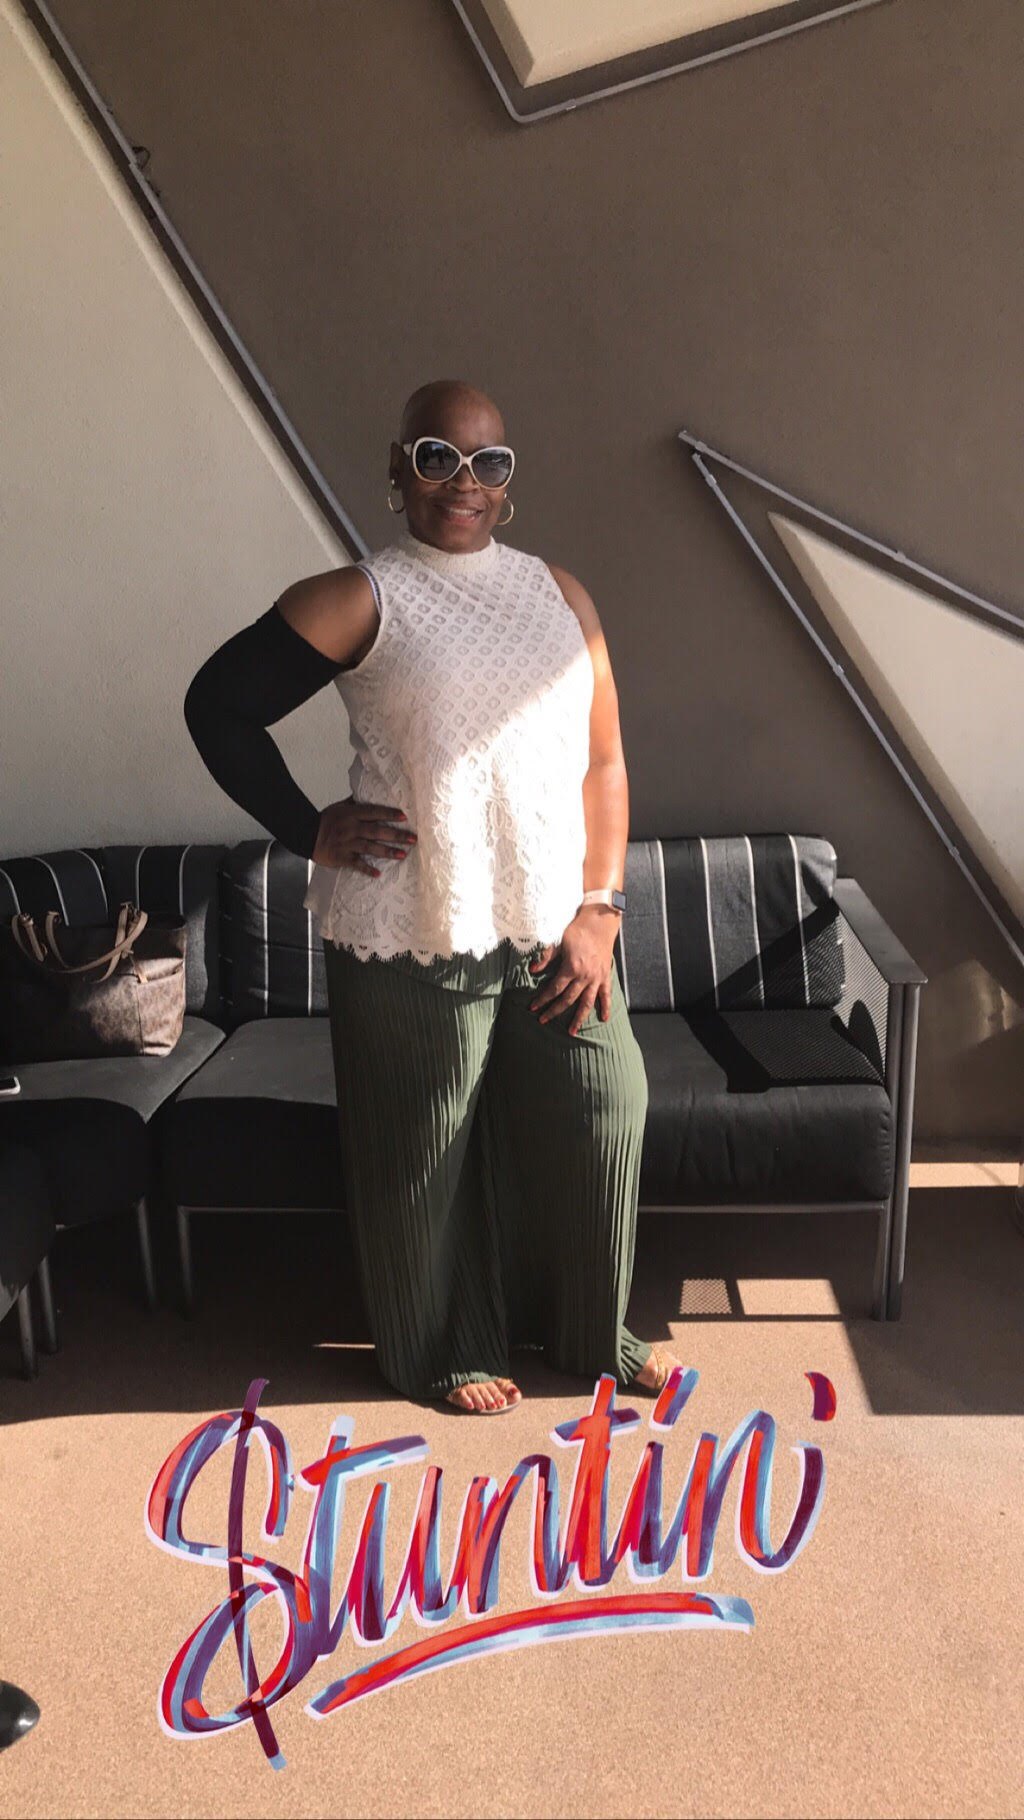 Meet the Breast Cancer Baddie - Rachelle Evans is a two-time breast cancer survivor from the Milwaukee, WI area. She wants to encourage and empower others on their journey.